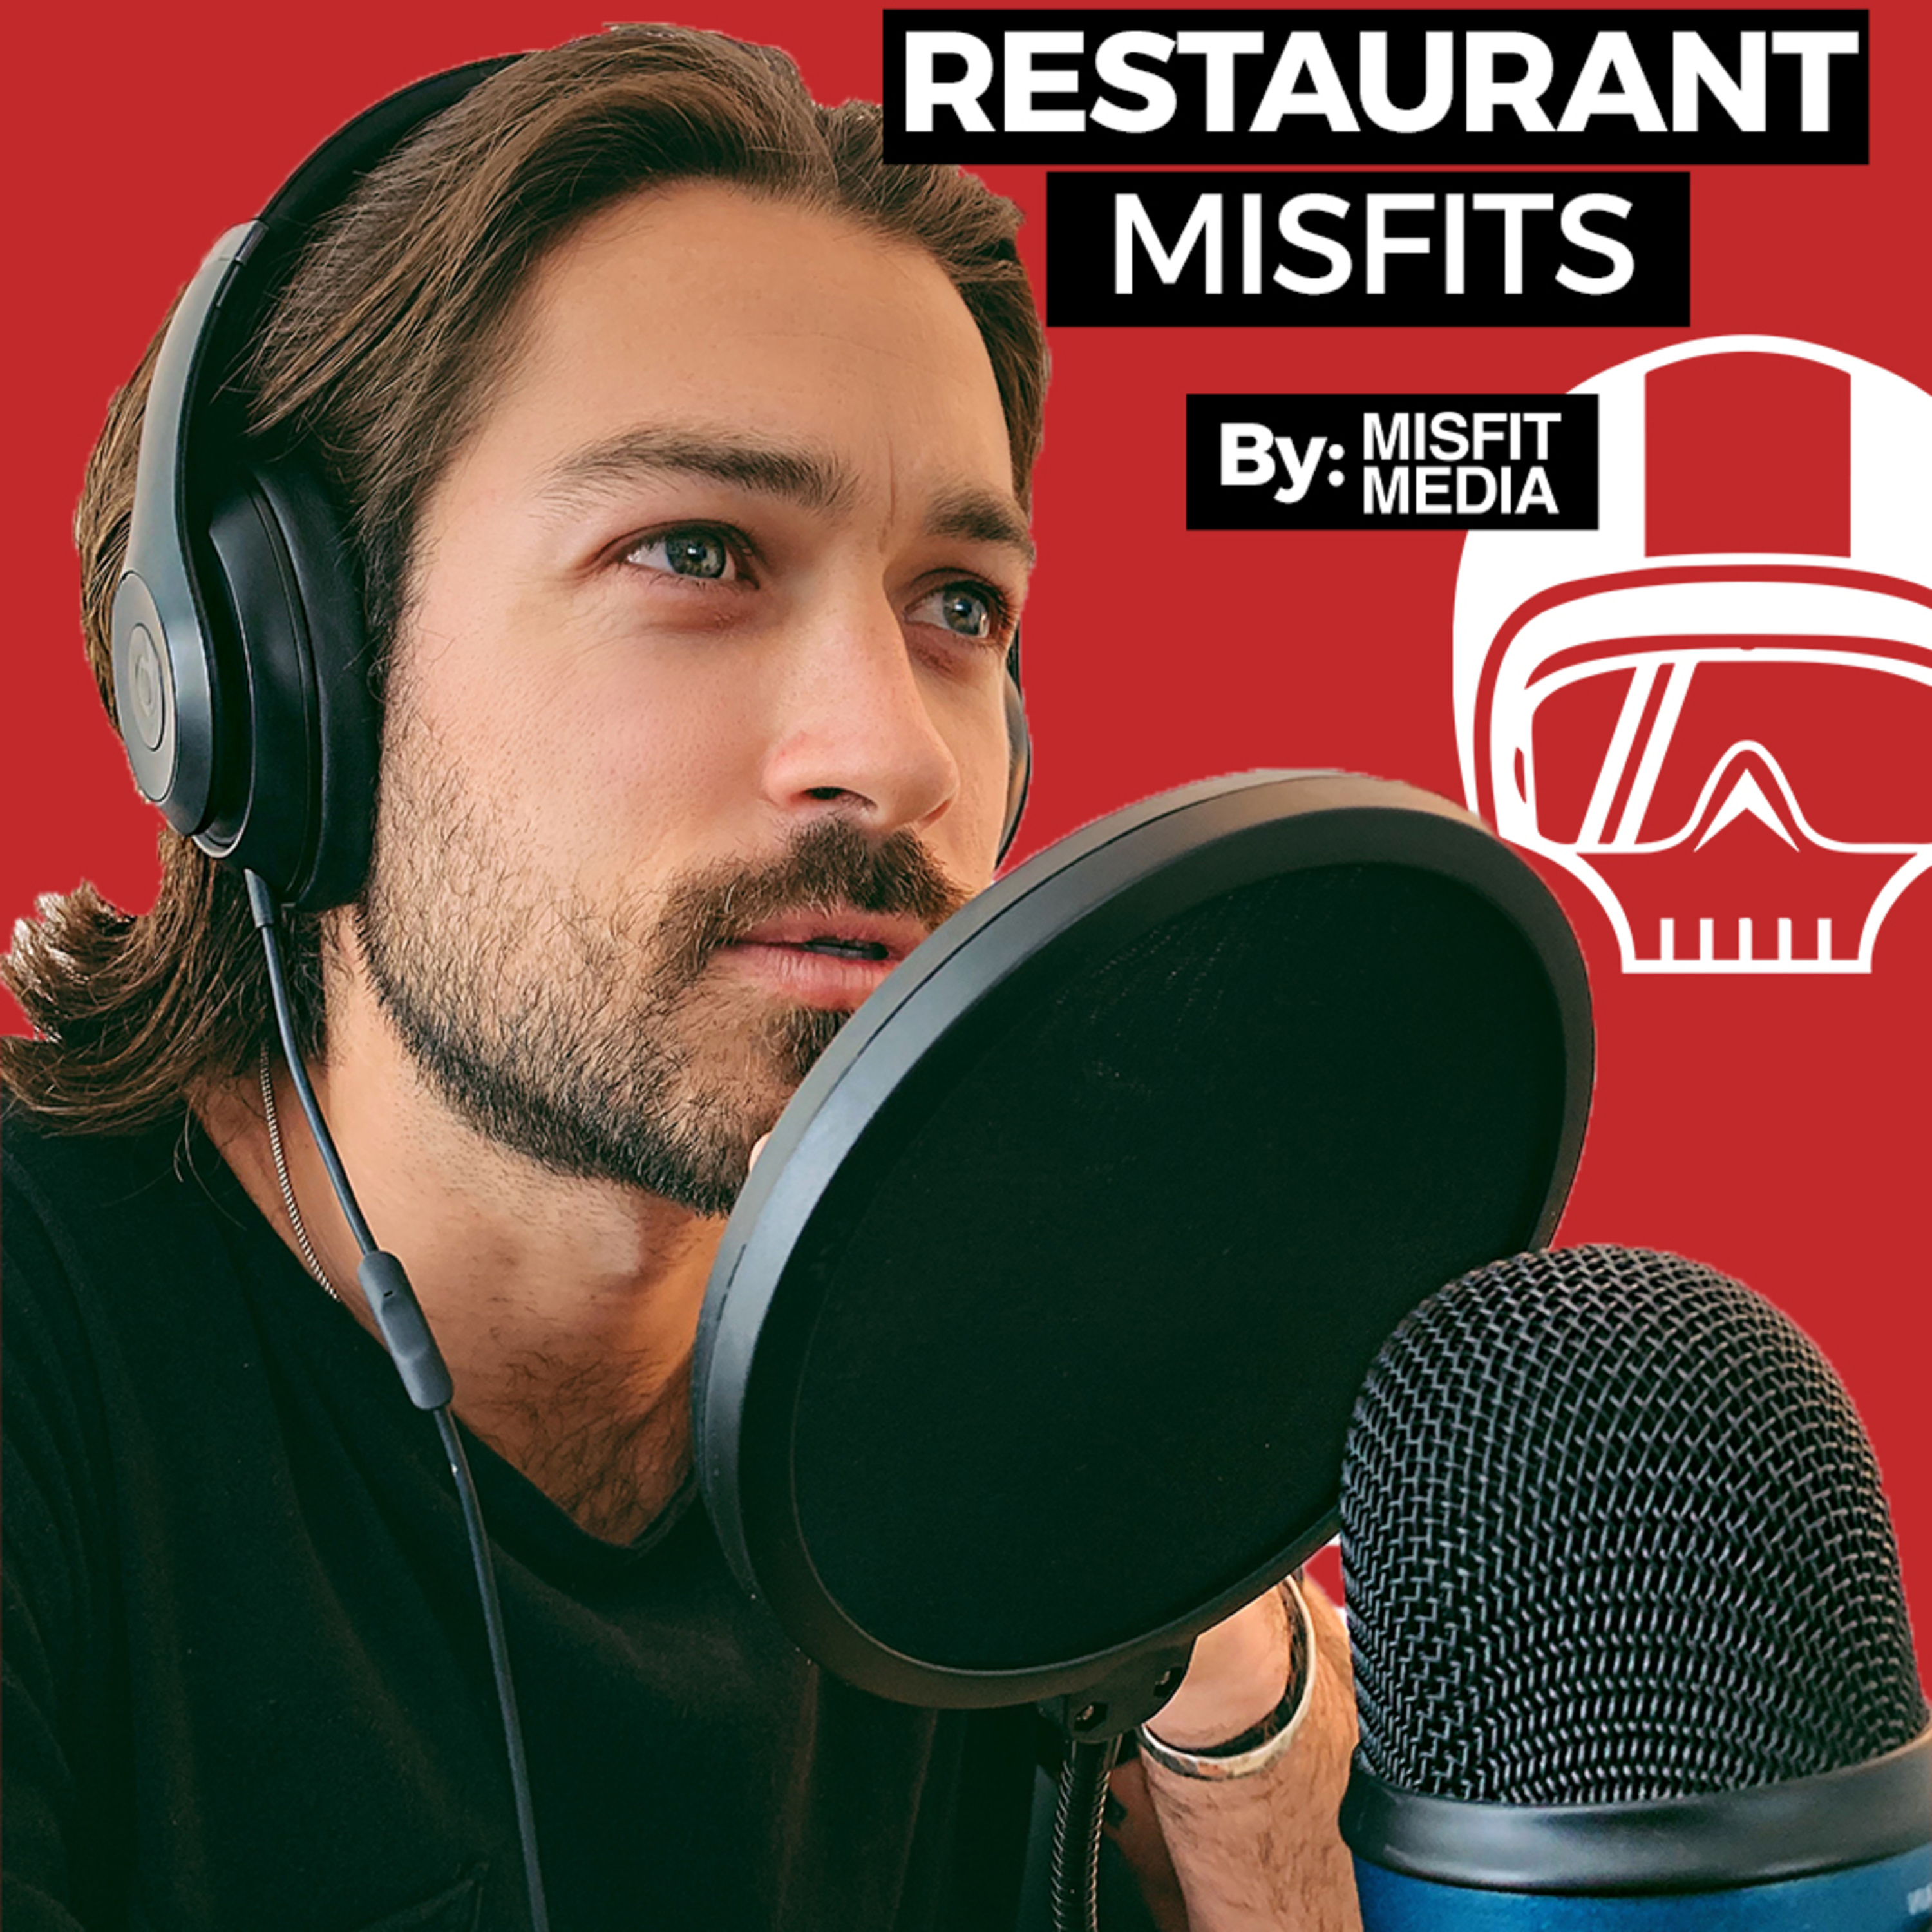 EP09 - From Software Sales to Brazilian Steakhouse to Butcher Shop